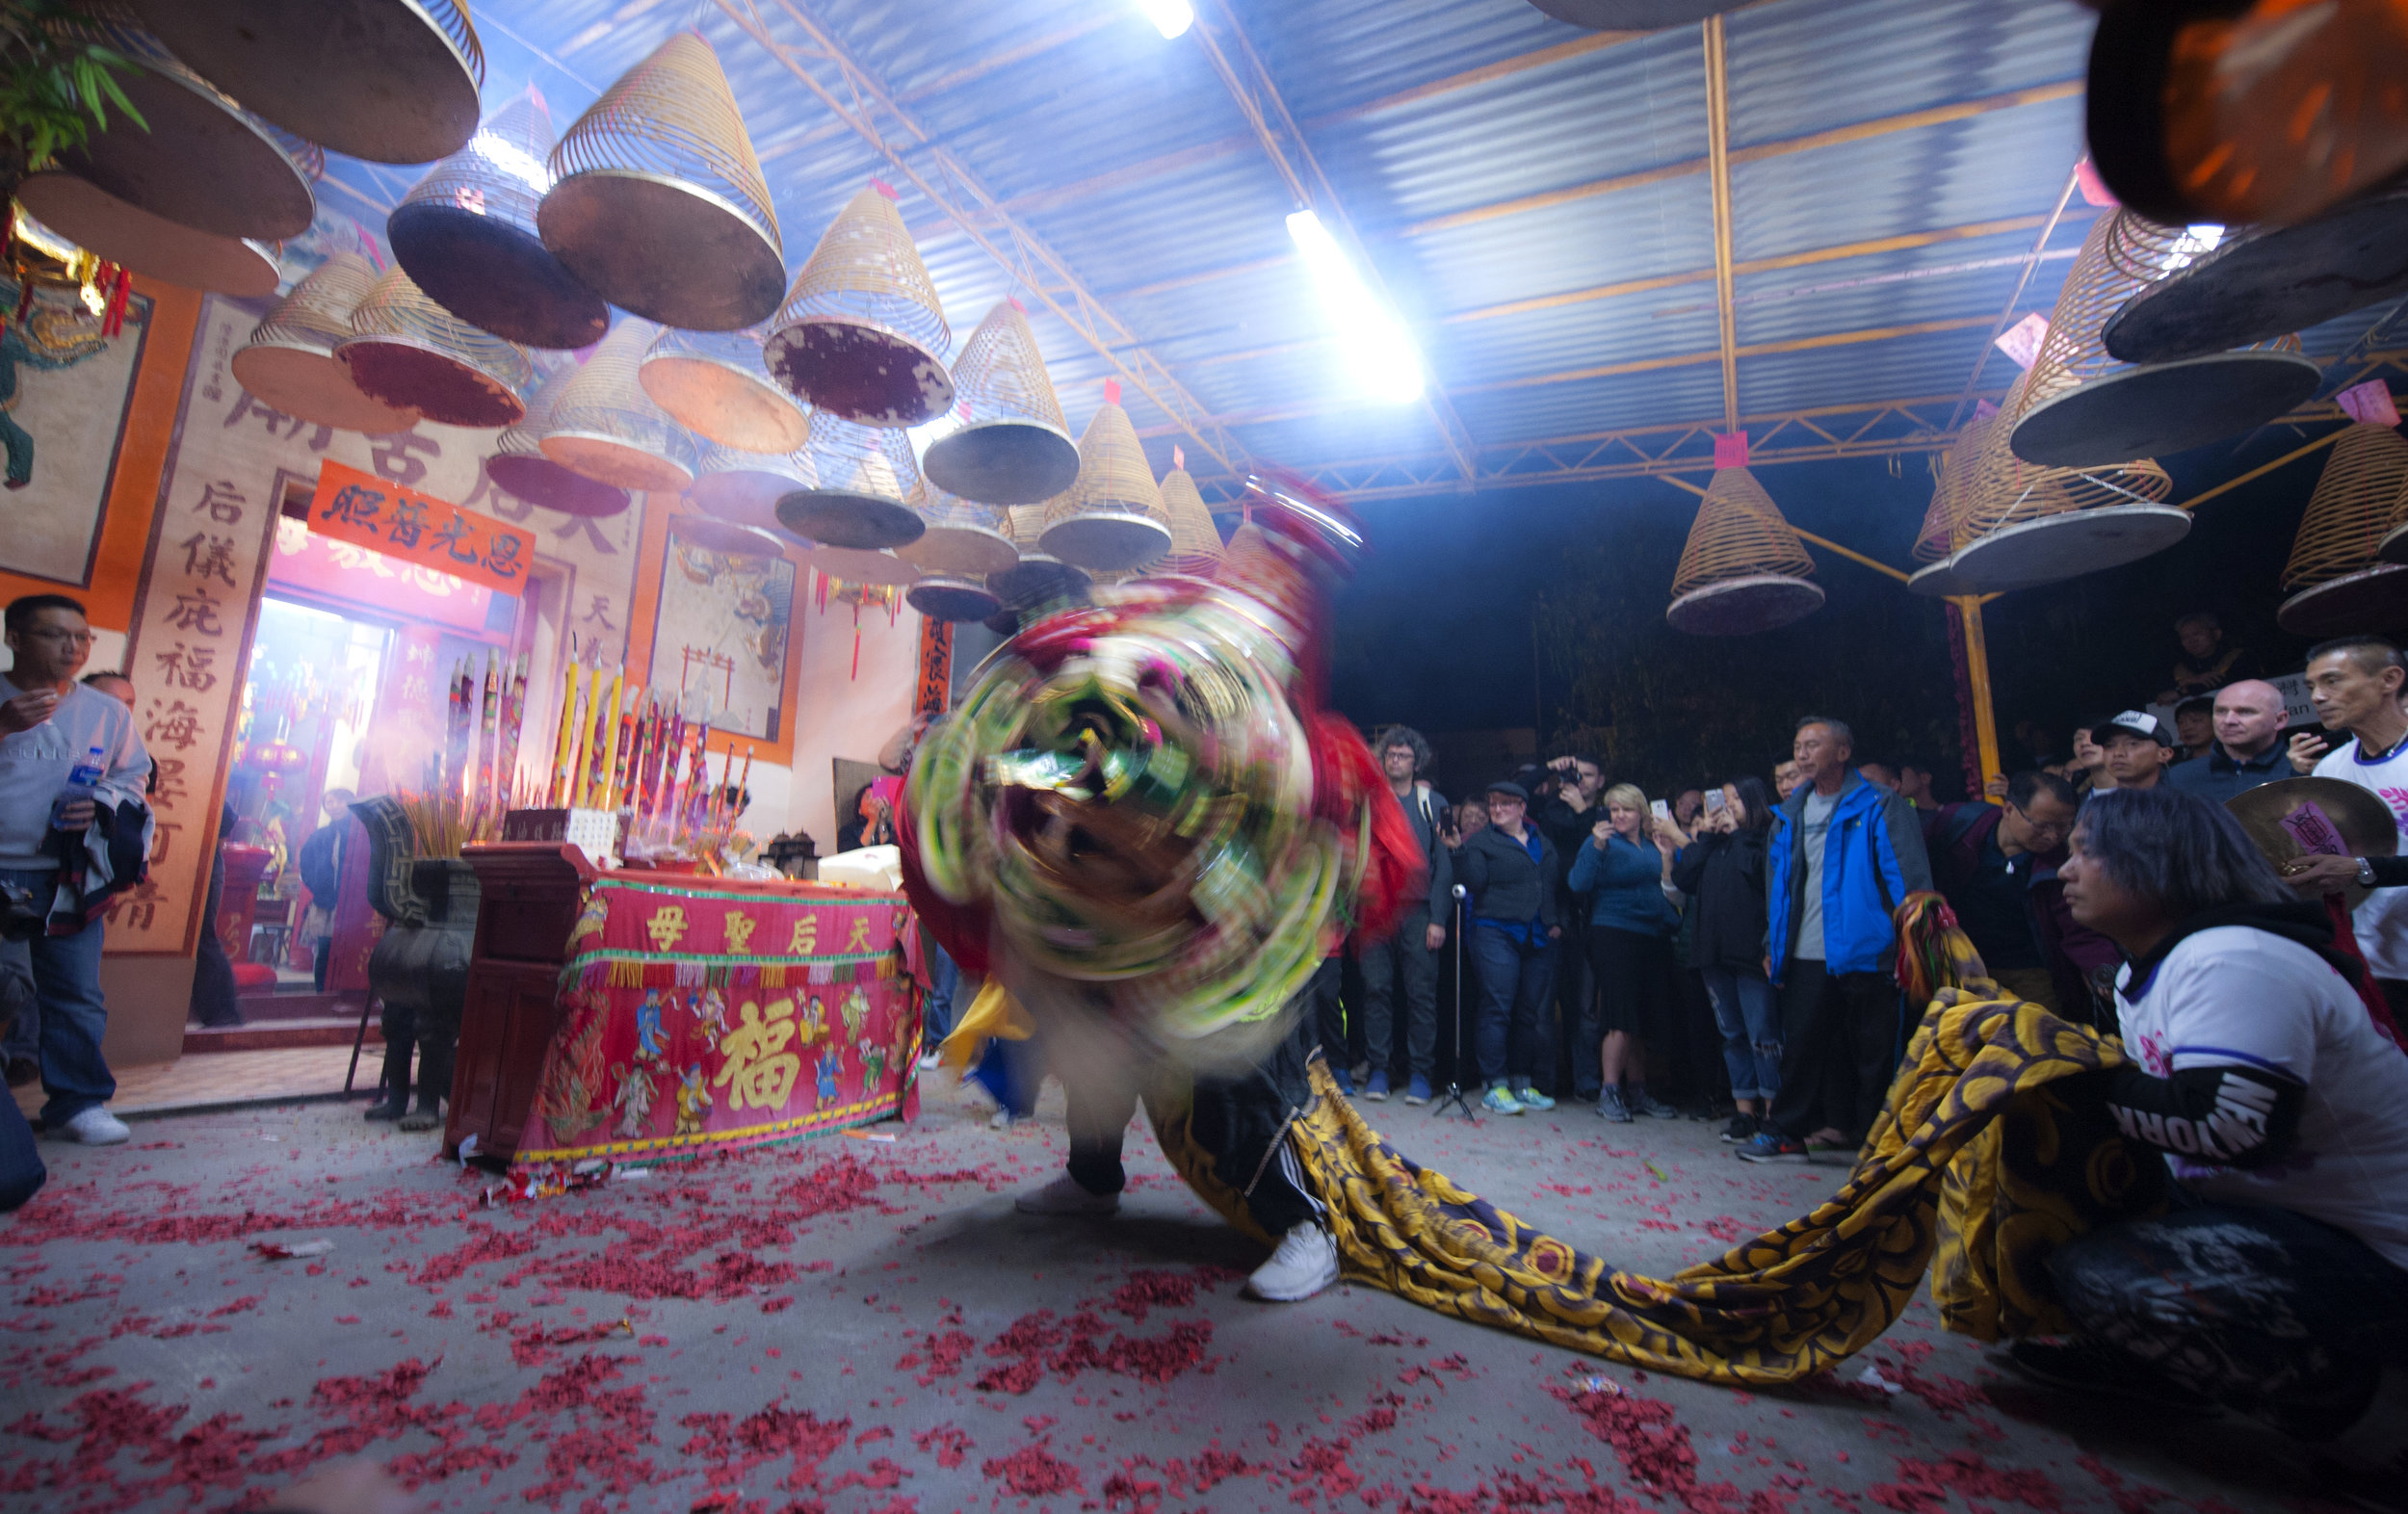 Welcoming the Year of Rooster in front of the Temple of Sea Goddess (Tin Hau), 2017.  2017鸡年大年初一的第一时刻,南丫岛榕树湾居民在天后庙舞兽燃鞭上香,祈祝新年吉祥。